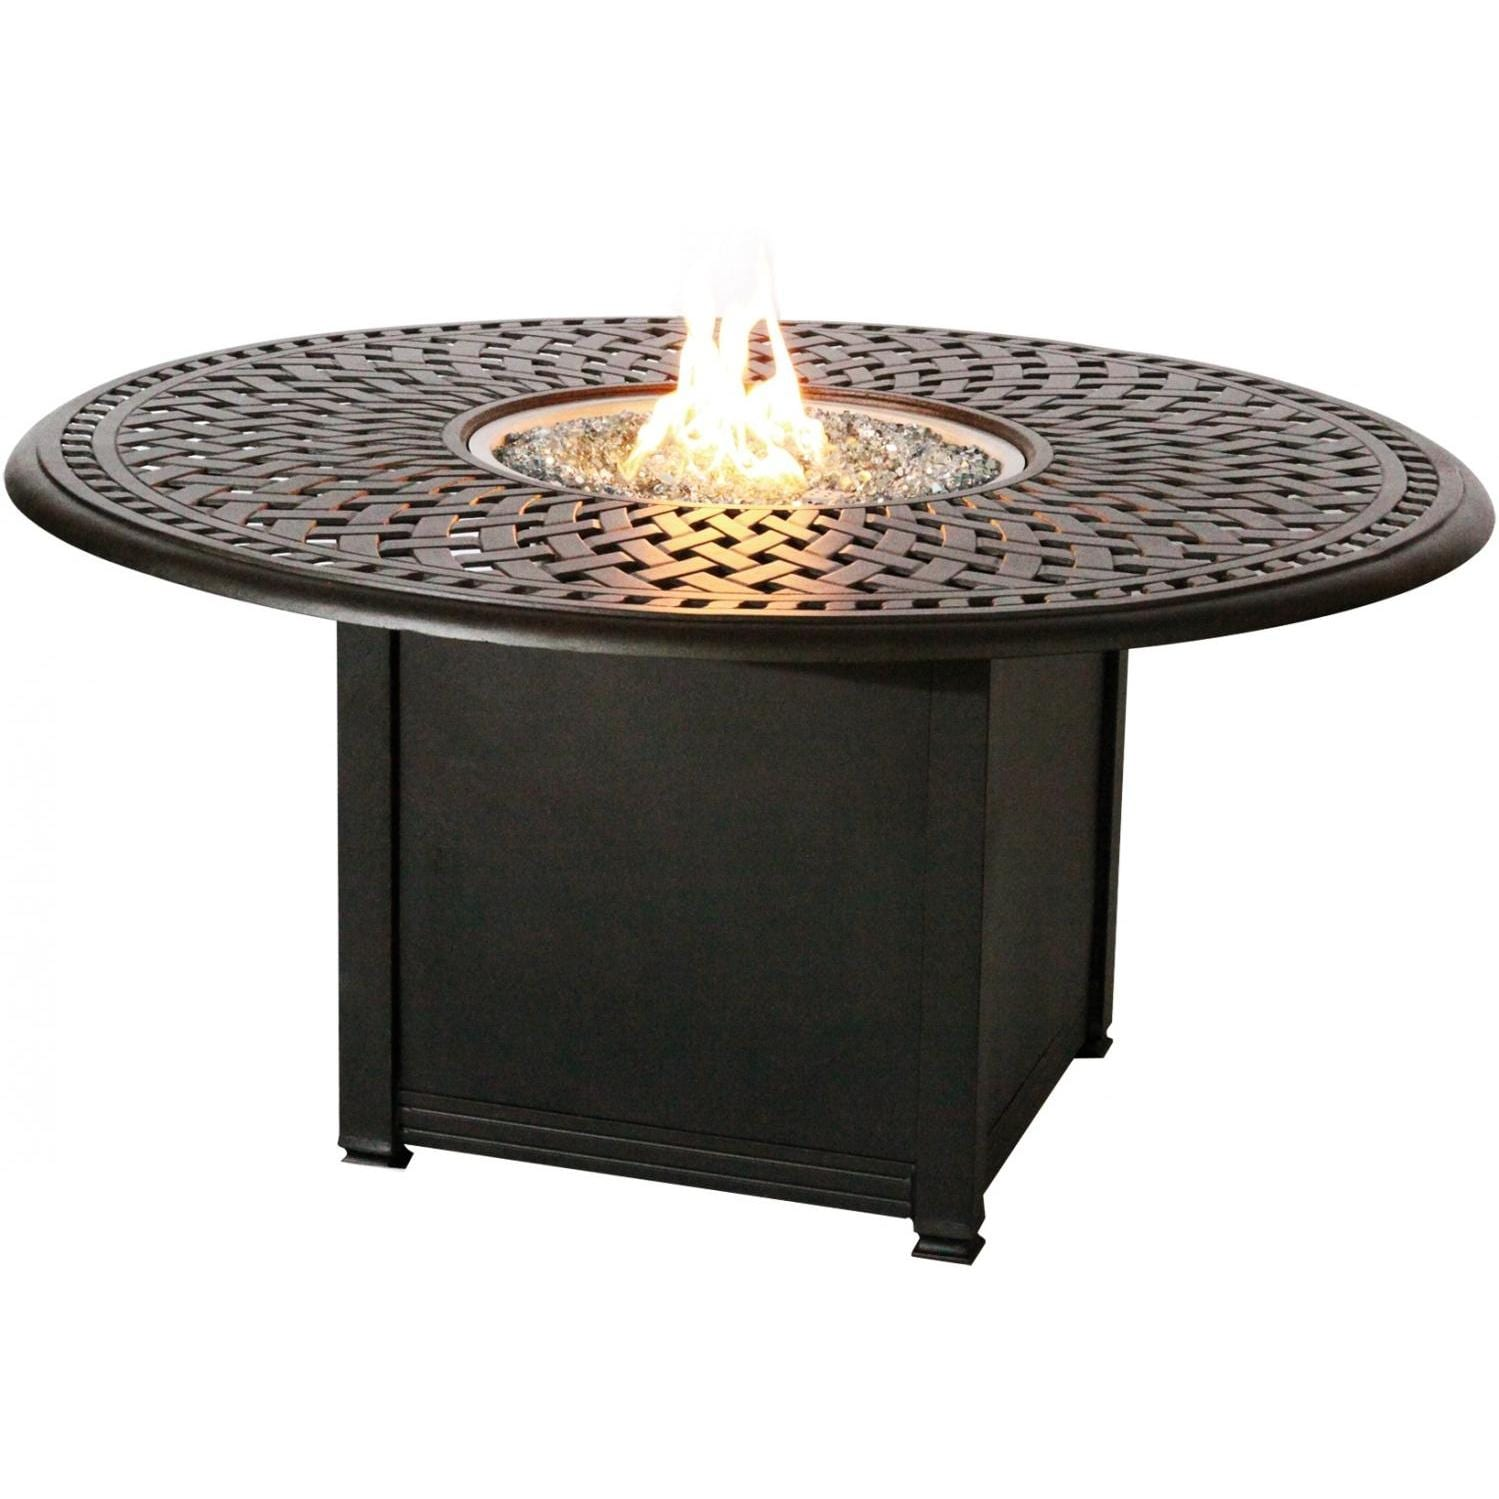 Darlee Signature Propane Fire Pit Chat Table